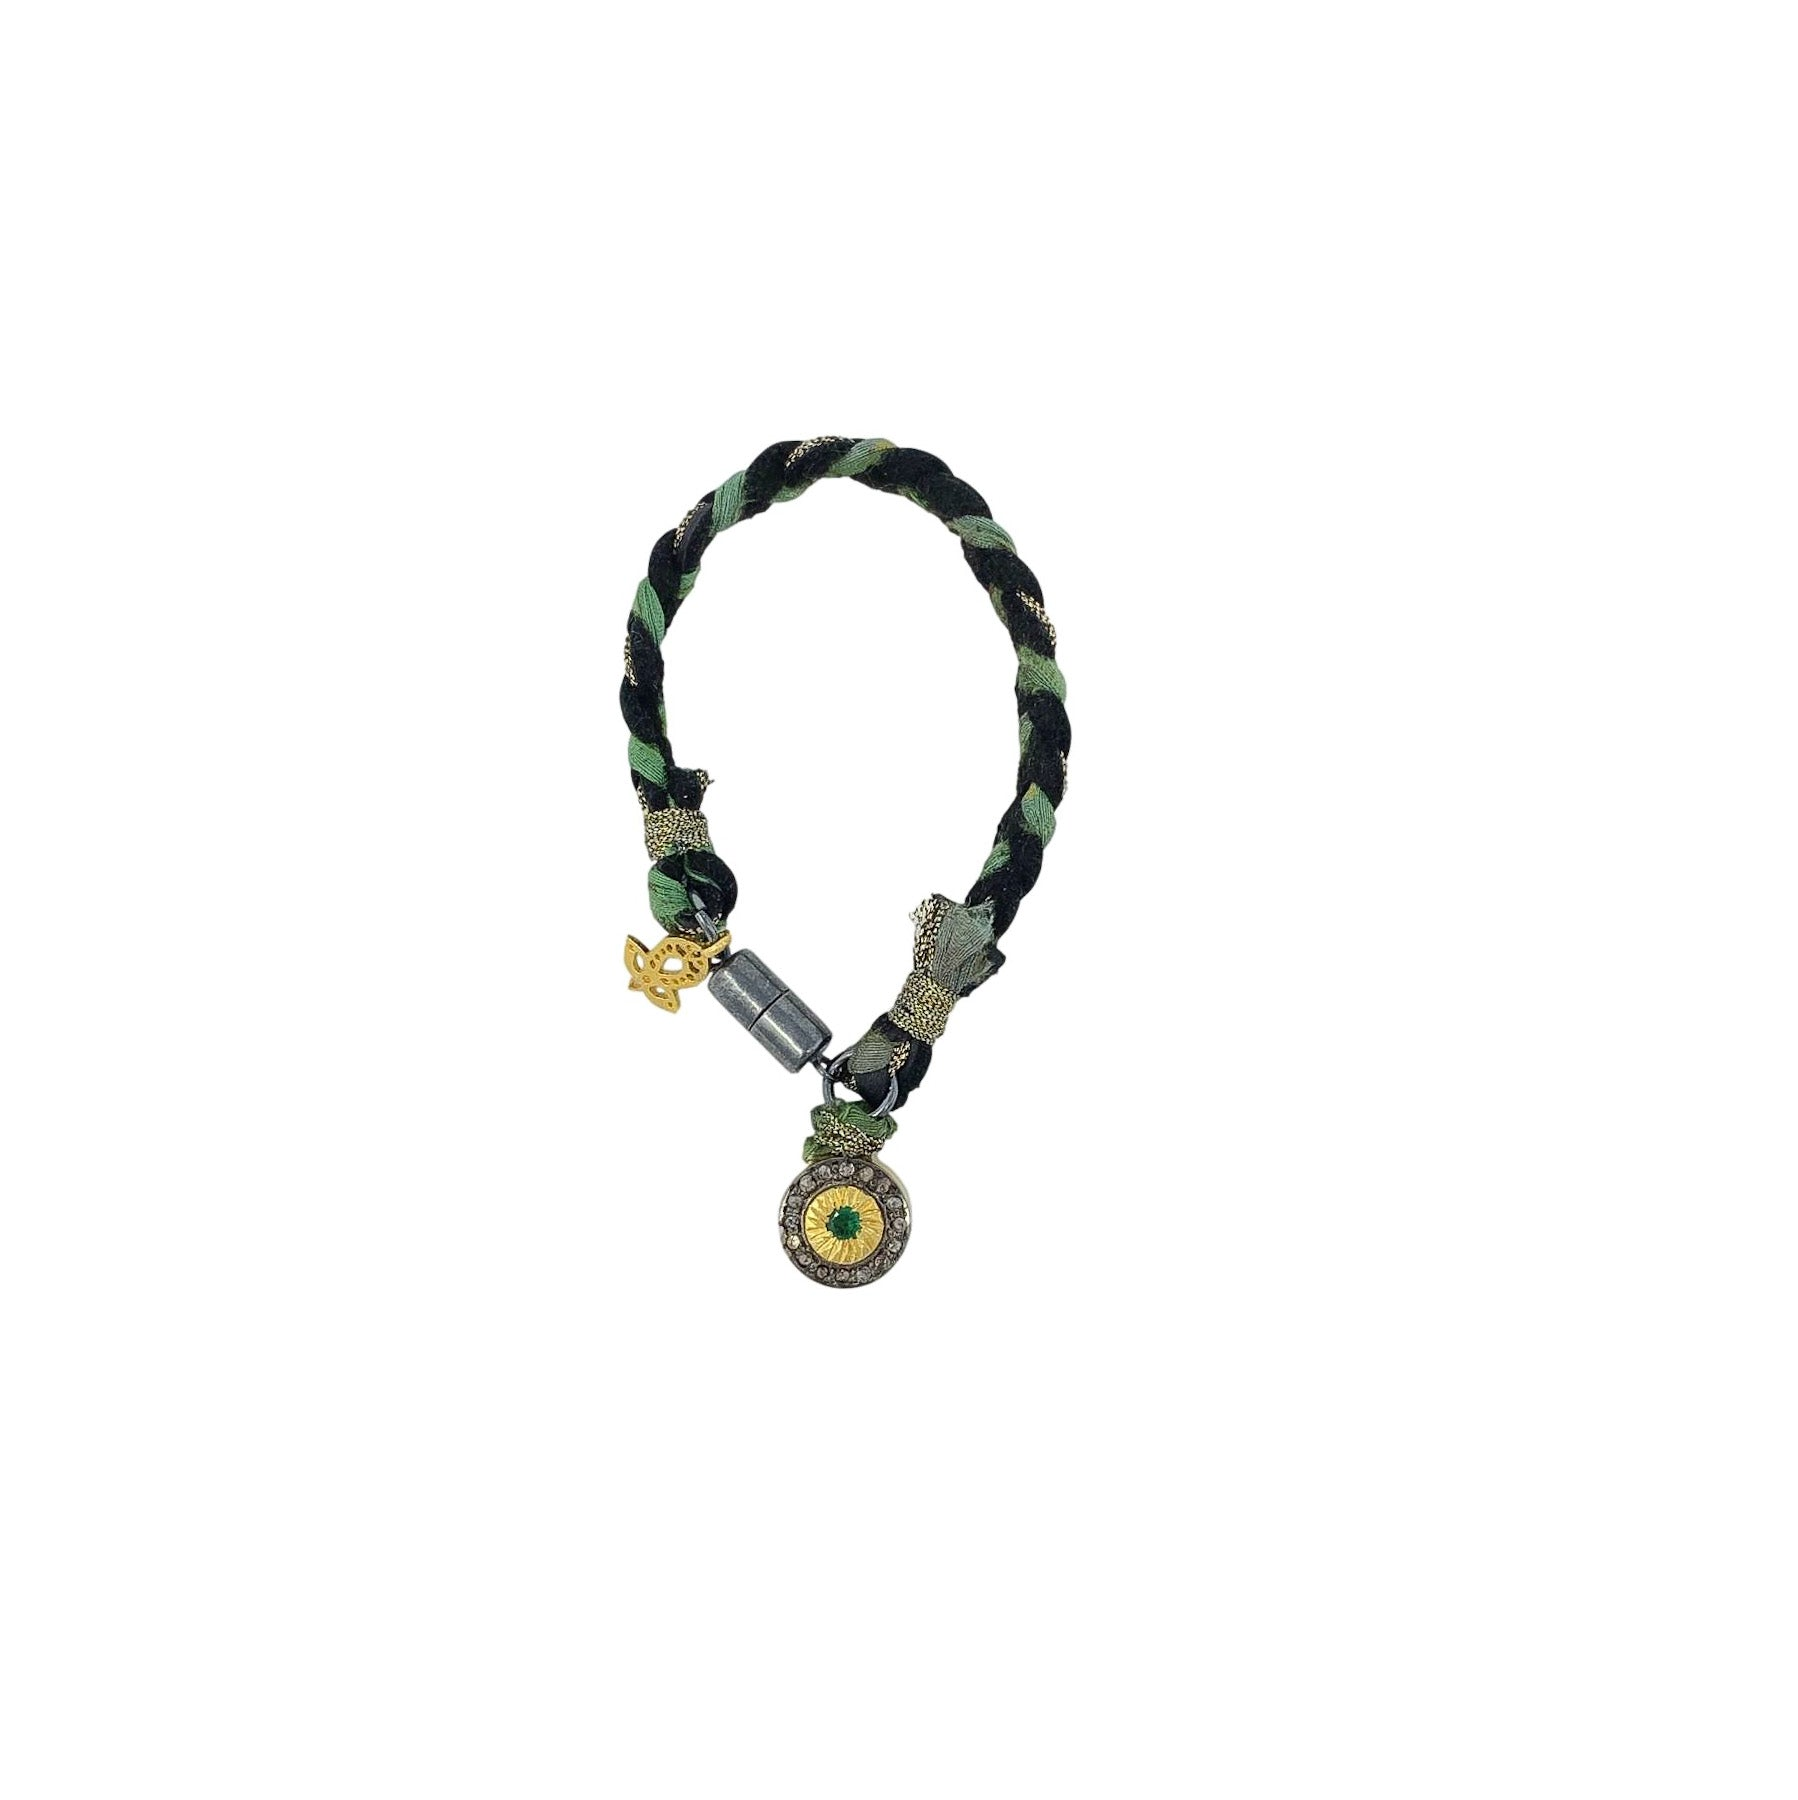 .Green + Black Woven Bracelet with Emerald Pendant